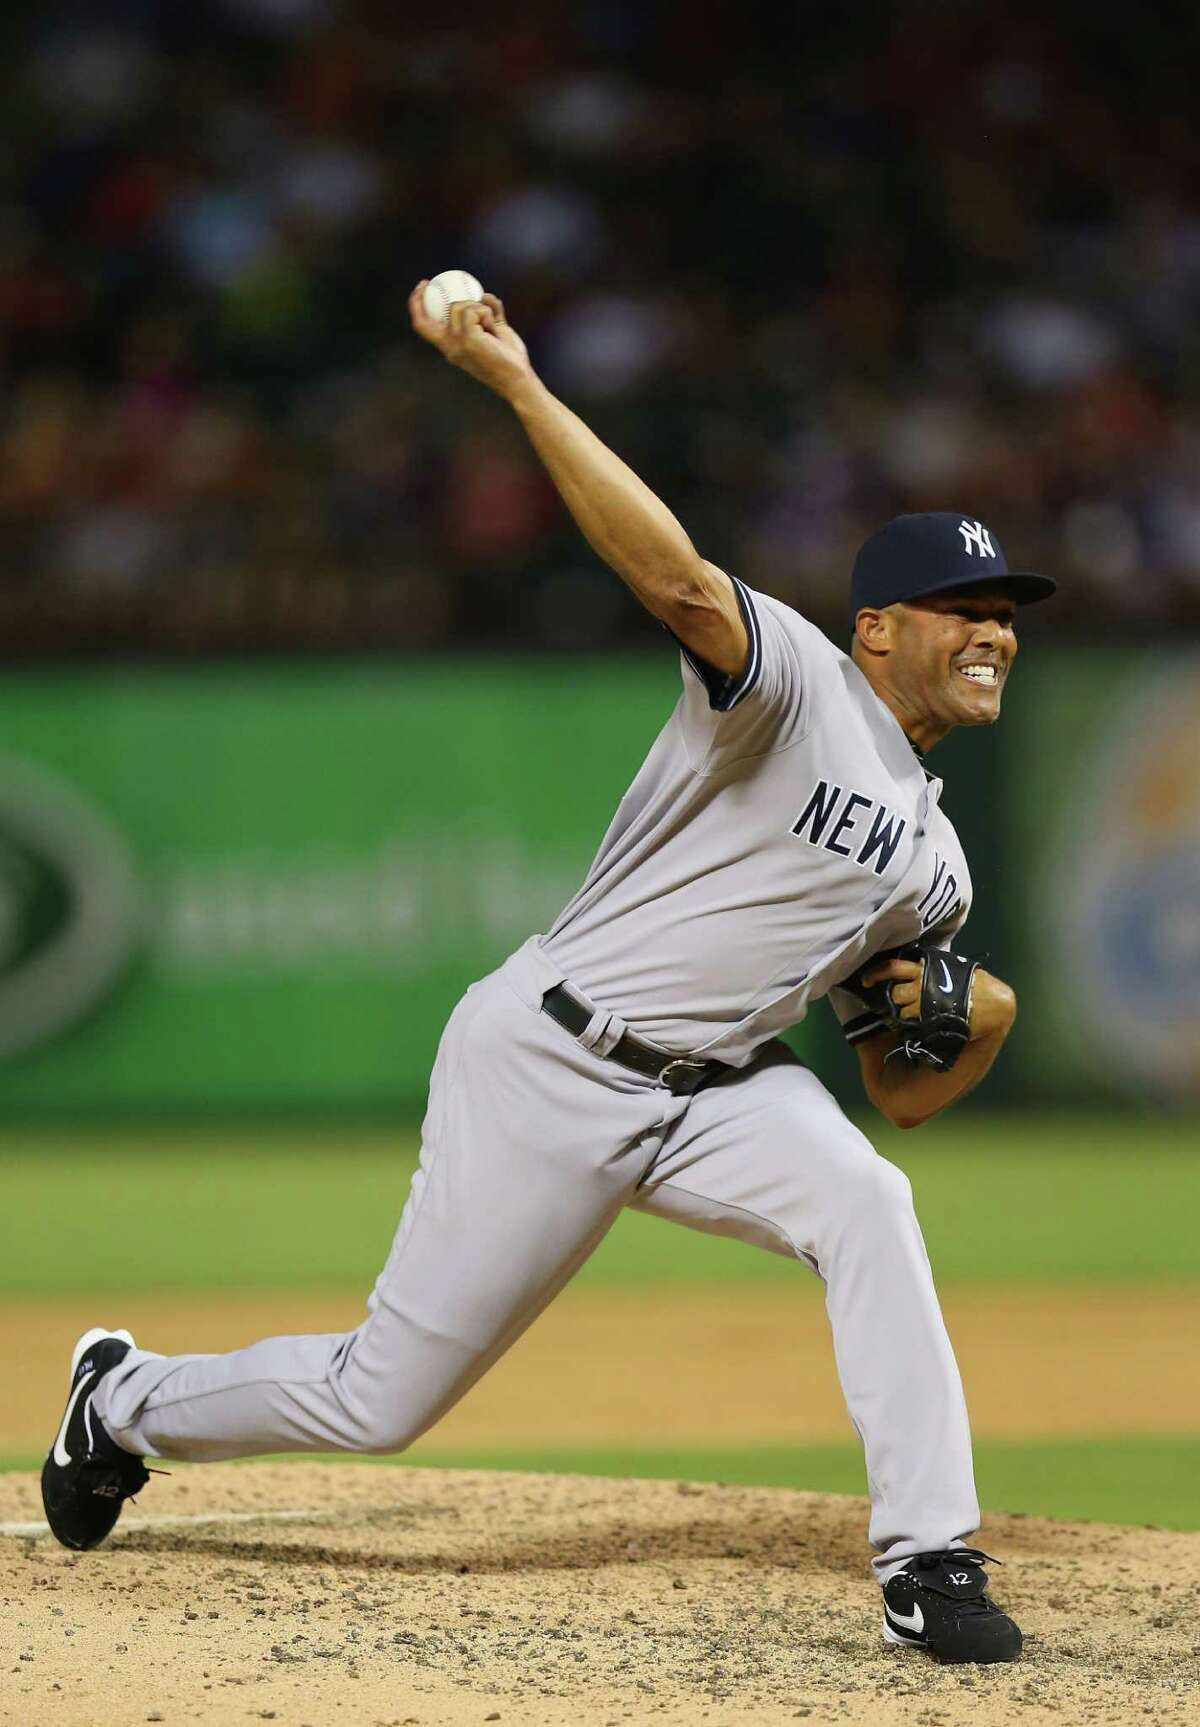 ARLINGTON, TX - JULY 23: Mariano Rivera #42 of the New York Yankees throws against the Texas Rangers at Rangers Ballpark in Arlington on July 23, 2013 in Arlington, Texas. (Photo by Ronald Martinez/Getty Images) ORG XMIT: 163494659